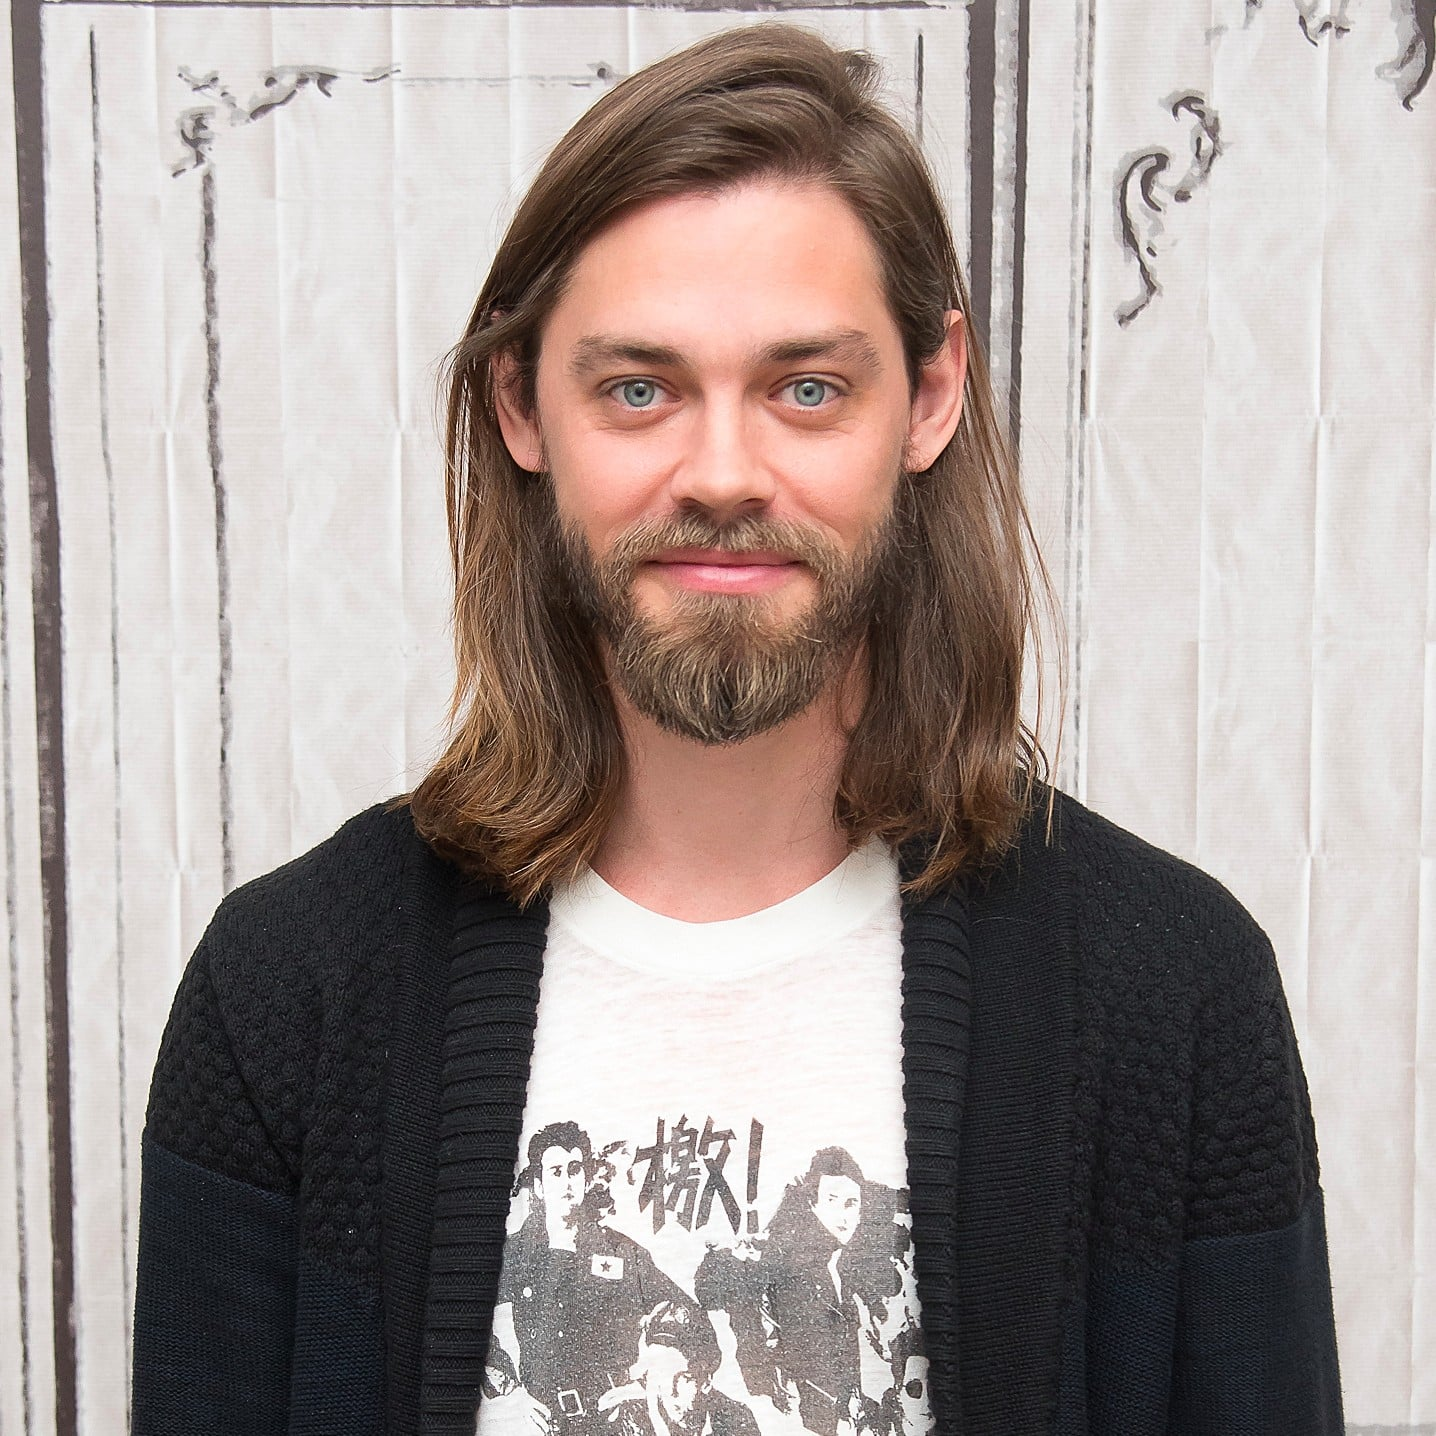 tom payne tumblrtom payne instagram, tom payne height, tom payne tumblr, tom payne photoshoot, tom payne википедия, tom payne skins, tom payne vk, tom payne gif hunt, tom payne winter, tom payne films, tom payne song, tom payne training, tom payne photo, tom payne wikipedia, tom payne imdb, tom payne fargo, tom payne youtube, tom payne wiki, tom payne y emma rigby, tom payne gif